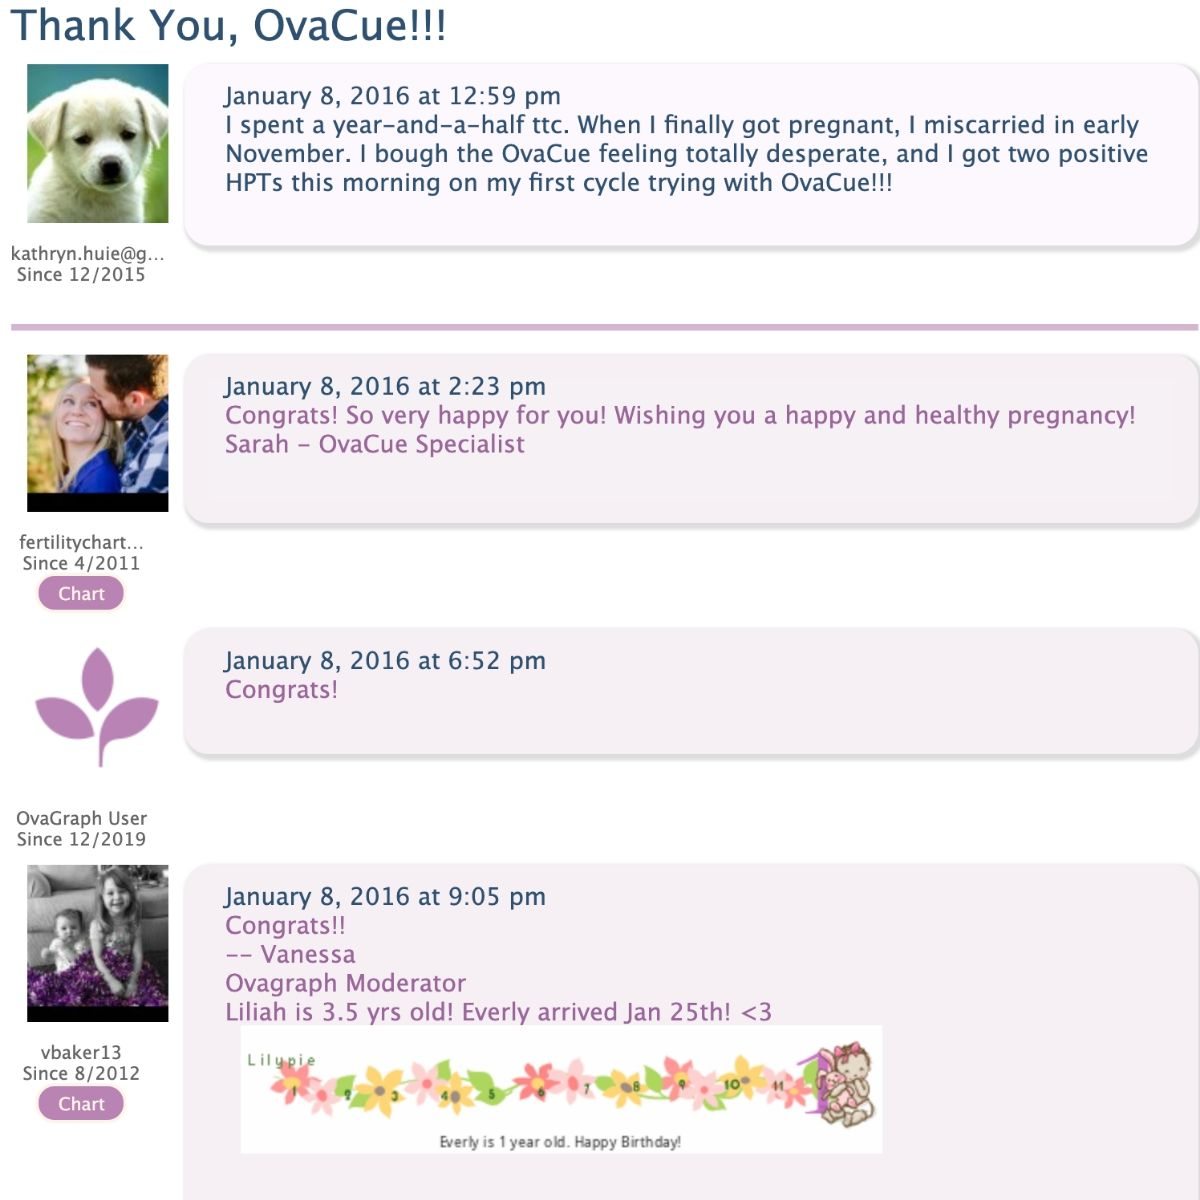 messages on an online forum board talking about OvaCue